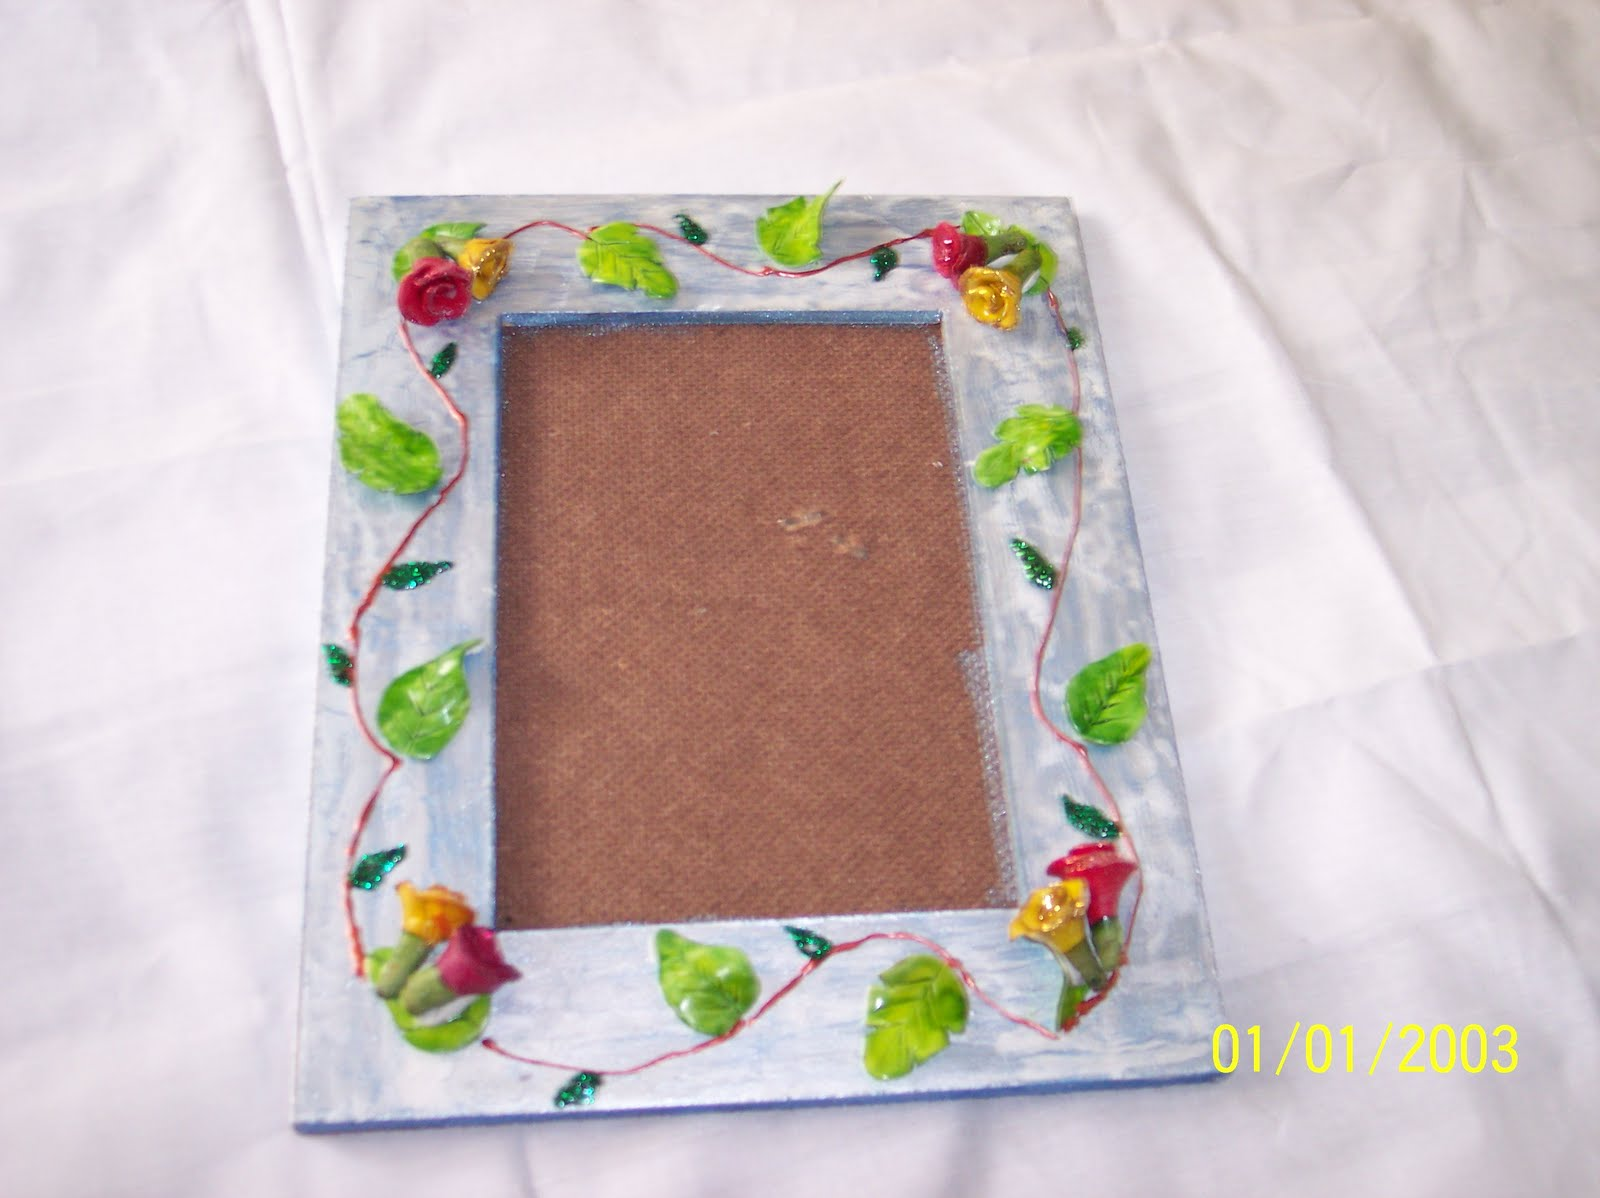 Art craft photo frame m seal work for Mural work using m seal